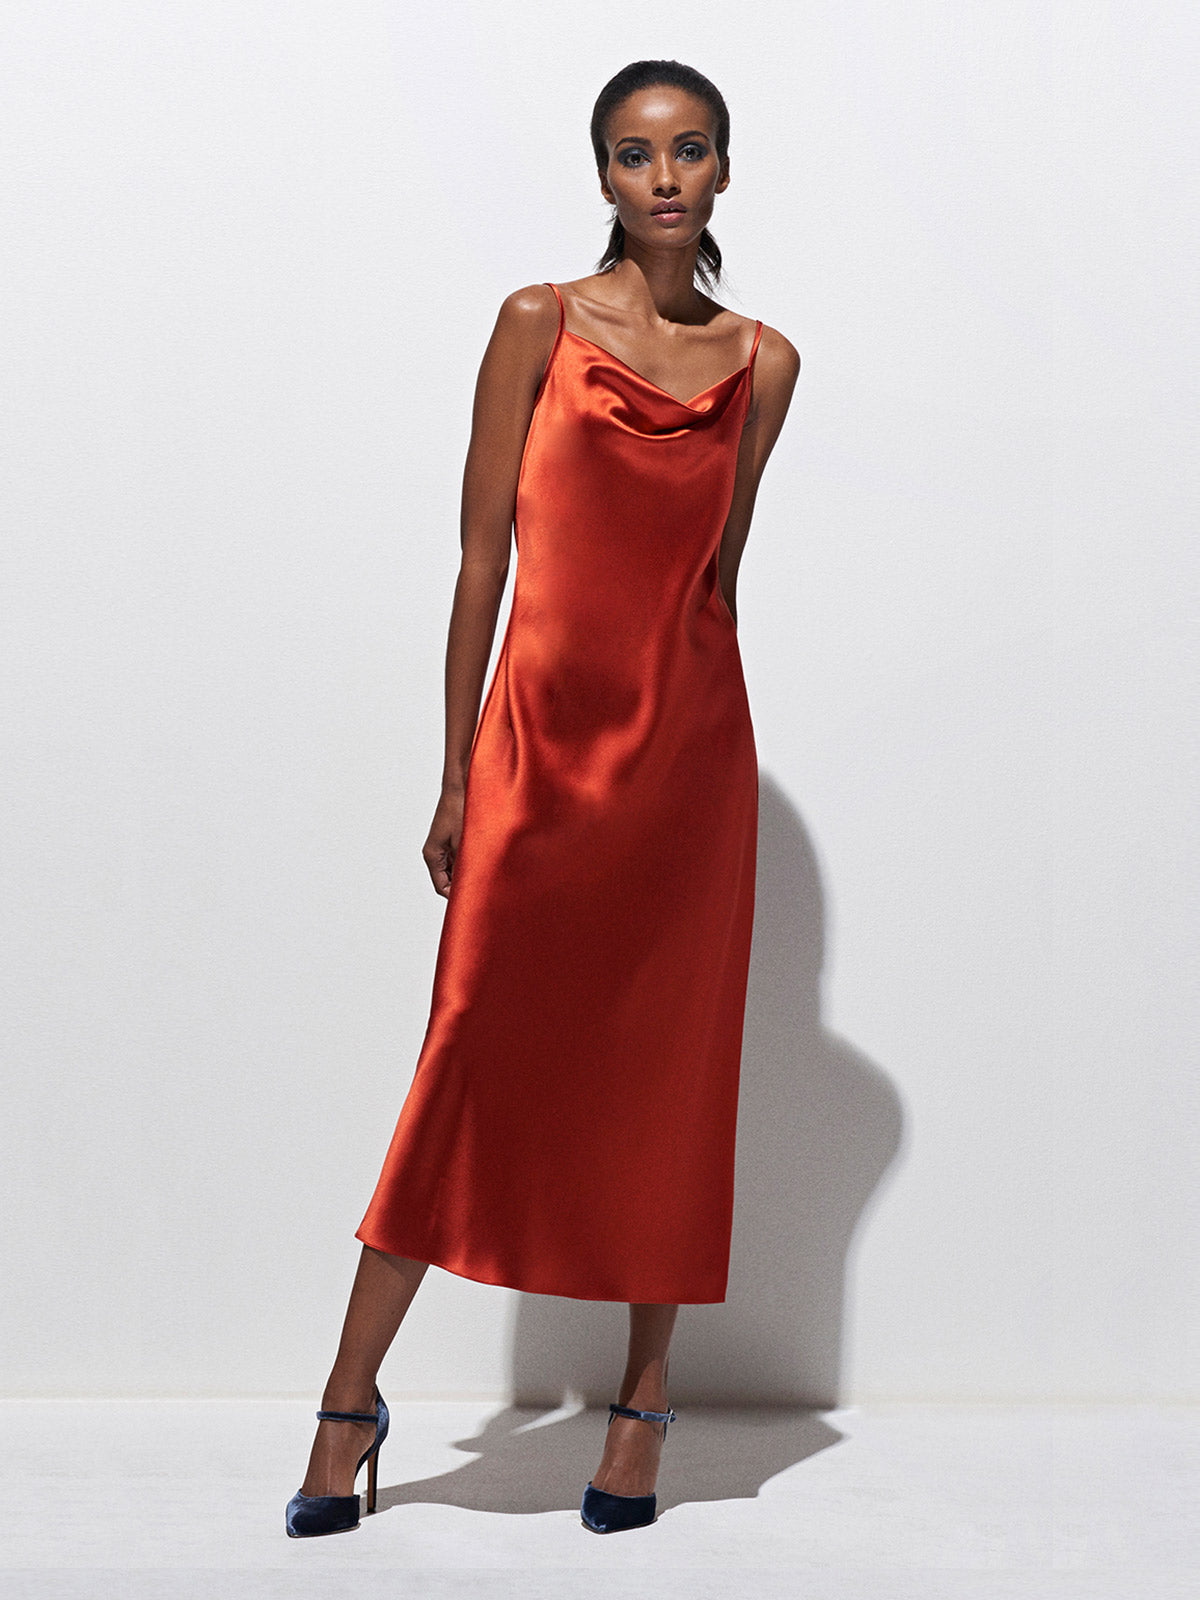 Draped Spaghetti Strap Midi Dress | Burnt Orange Draped Spaghetti Strap Midi Dress | Burnt Orange